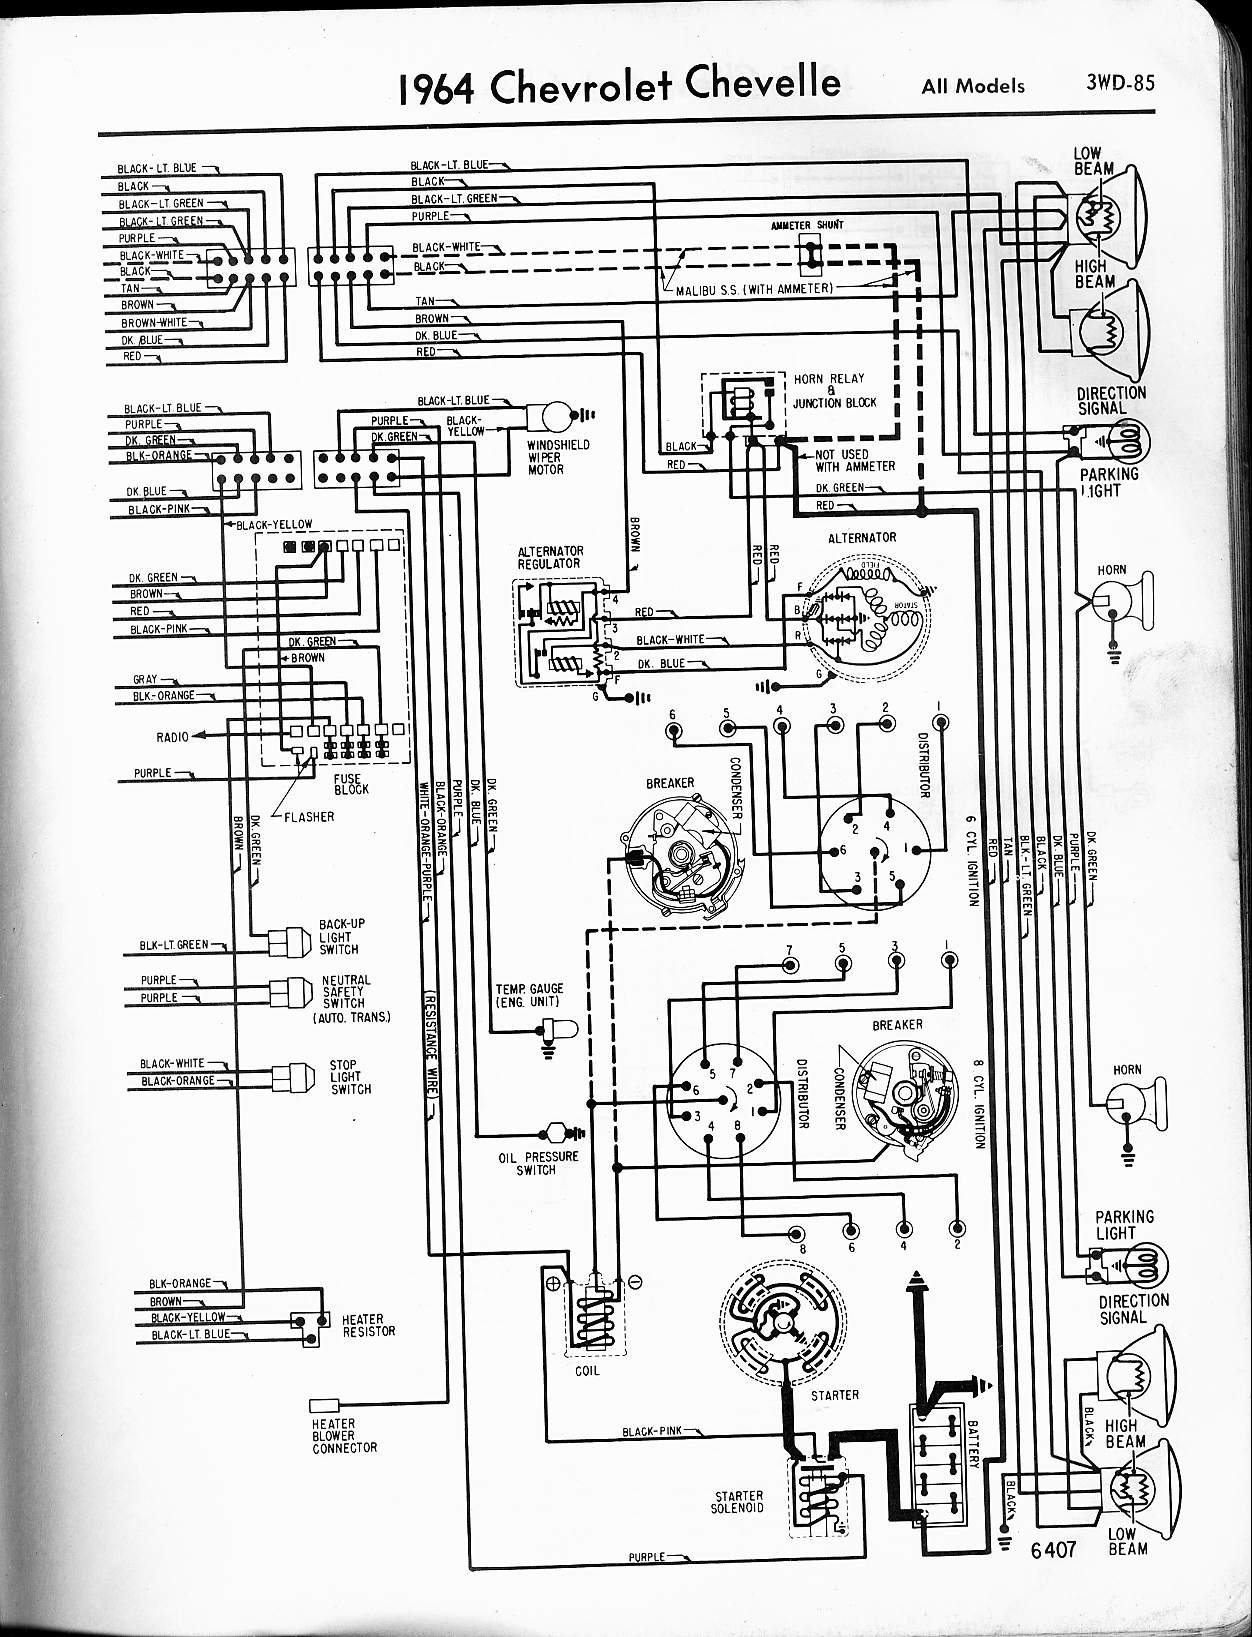 1965 chevelle fuse block diagram wiring diagram detailed 1976 Pontiac LeMans 66 chevelle fuse box diagram data wiring diagram today 1995 dodge fuse block diagram 1964 chevelle